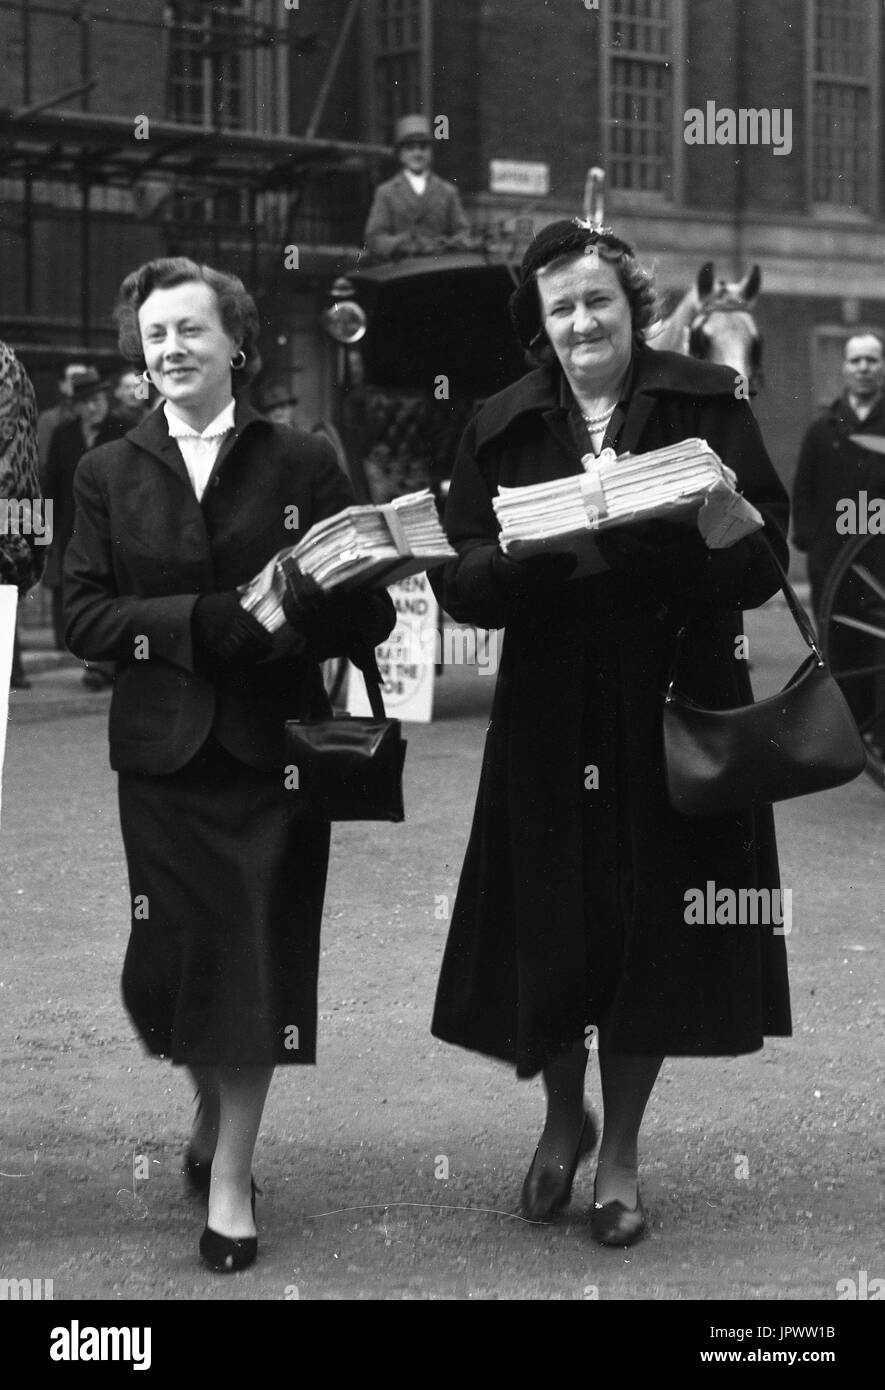 Women MPs delivering a a petition of 80,000 signatures supporting equal pay for women to the House of Commons in March 1954. Left to right Barbara Castle (Blackburn) and Irene Ward (Tynemouth). - Stock Image